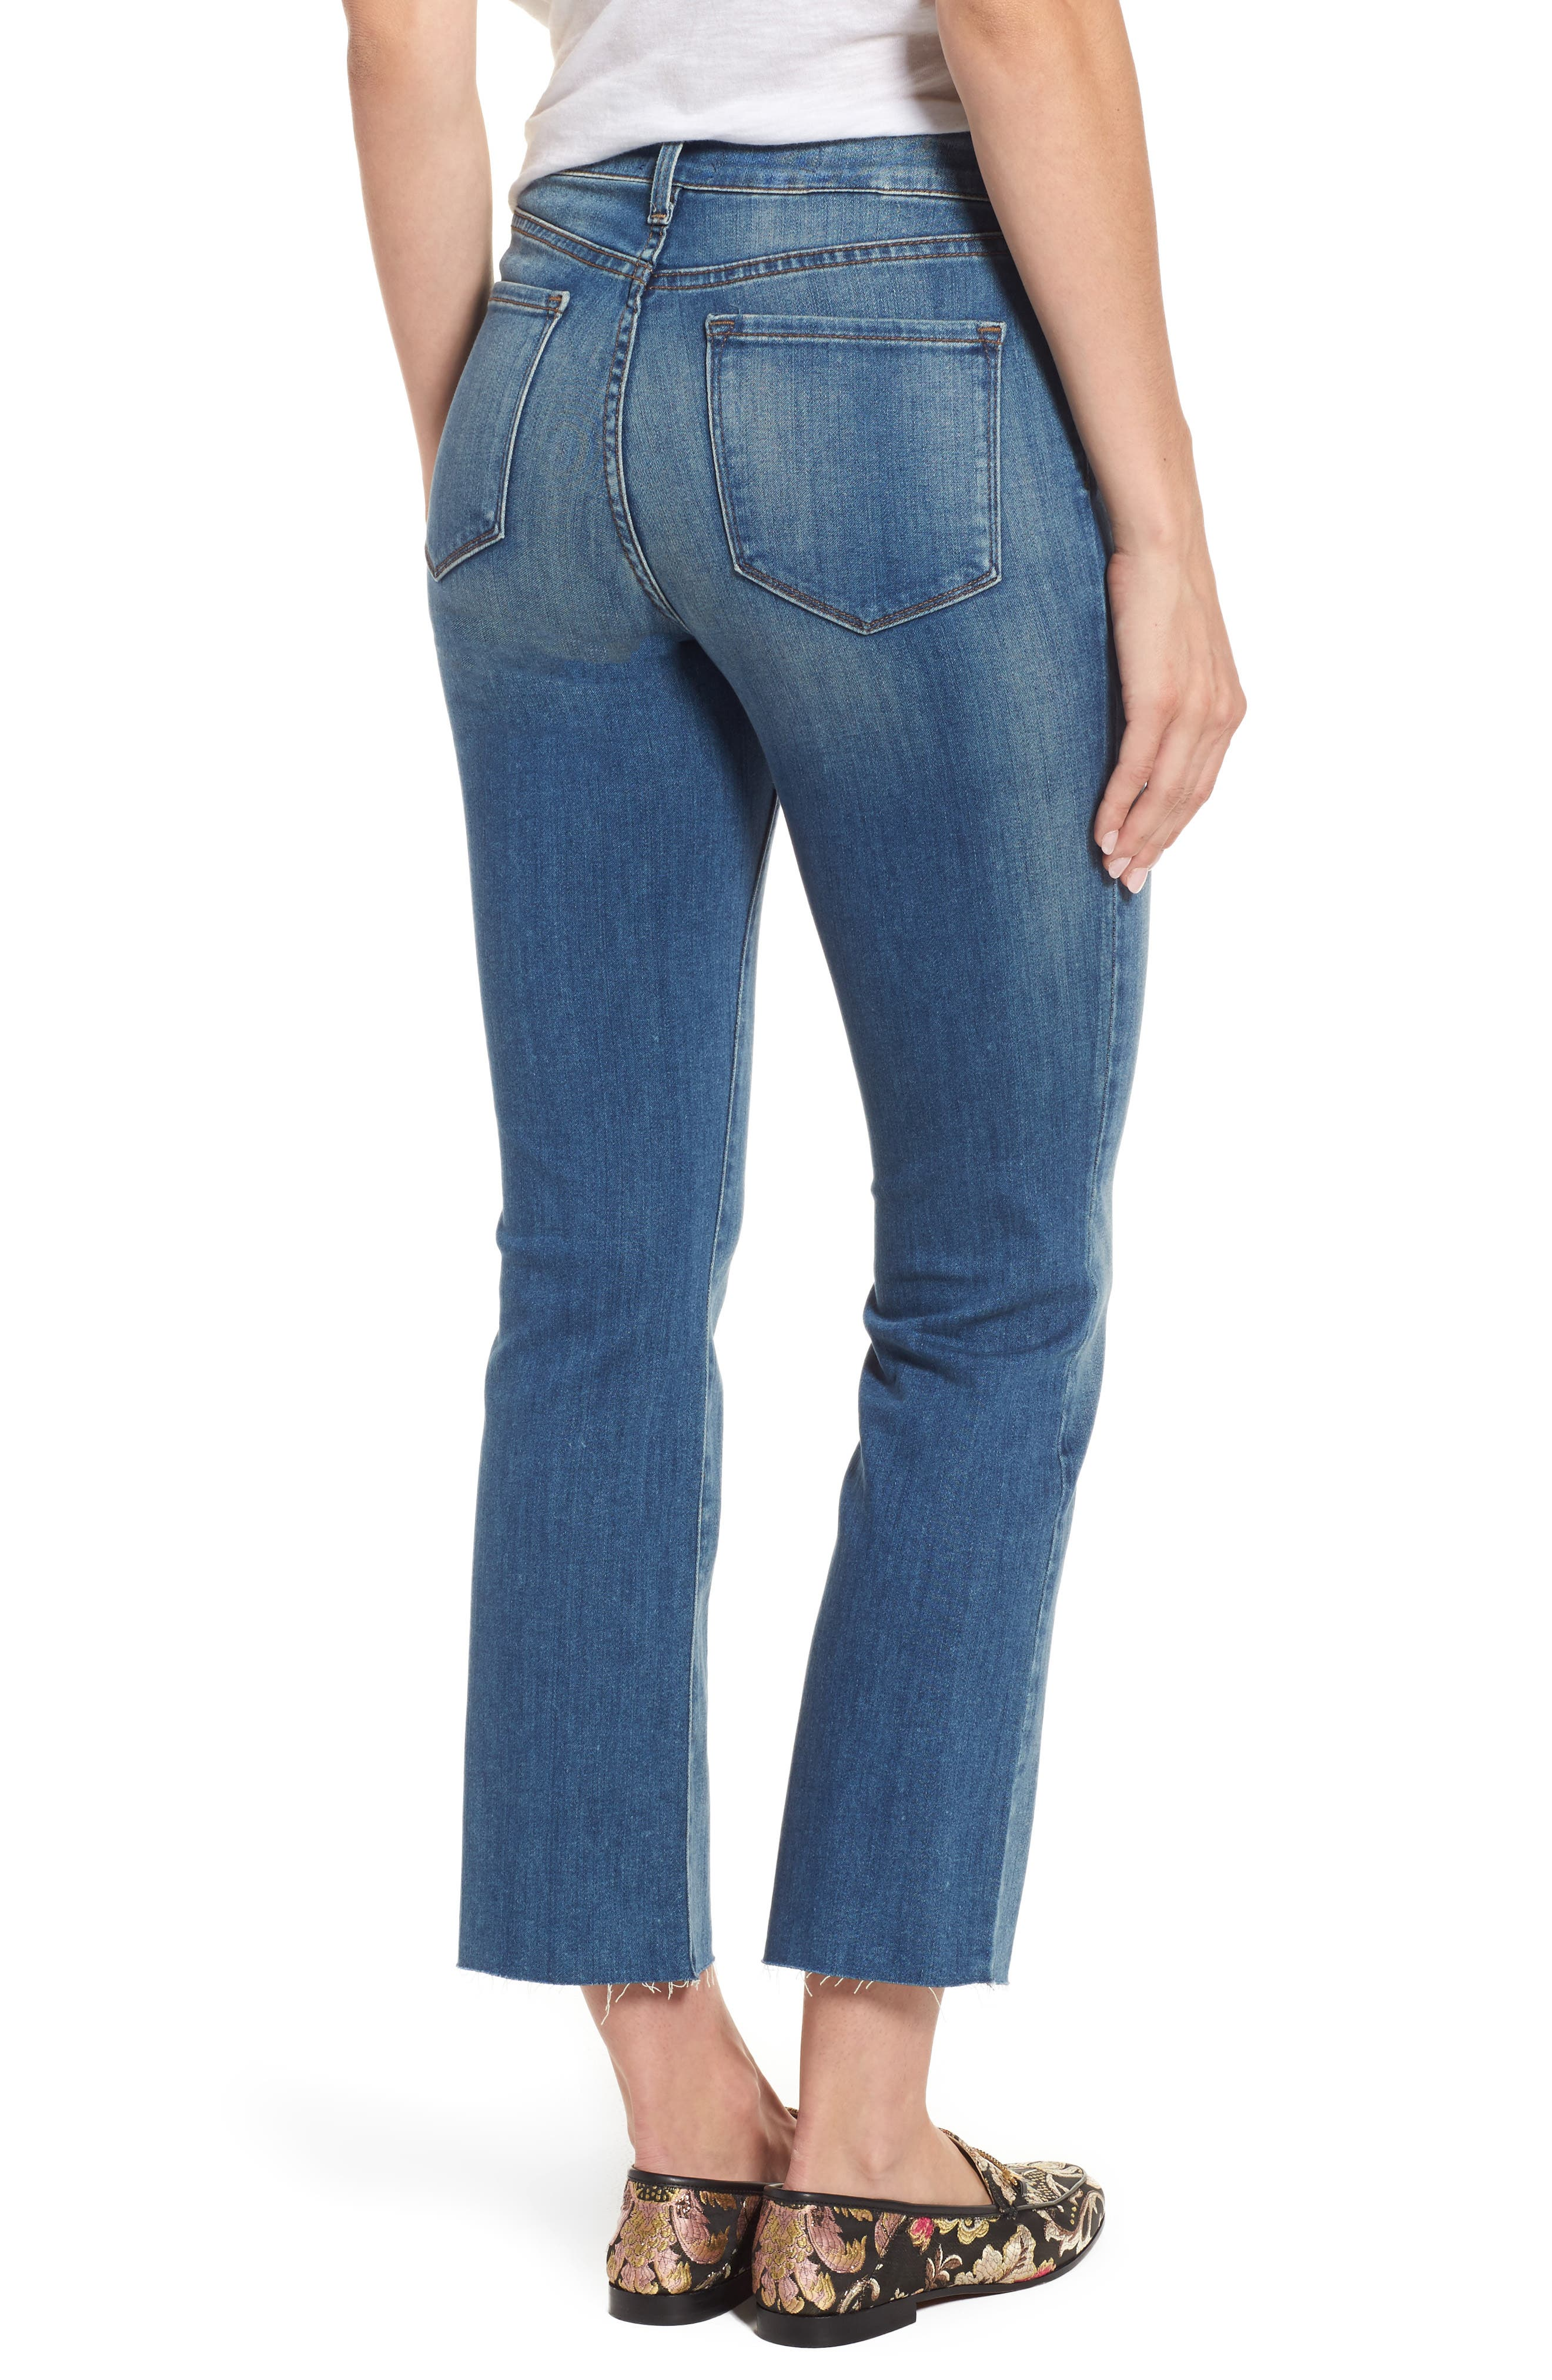 Marilyn Ankle Skinny Jeans,                             Alternate thumbnail 2, color,                             417